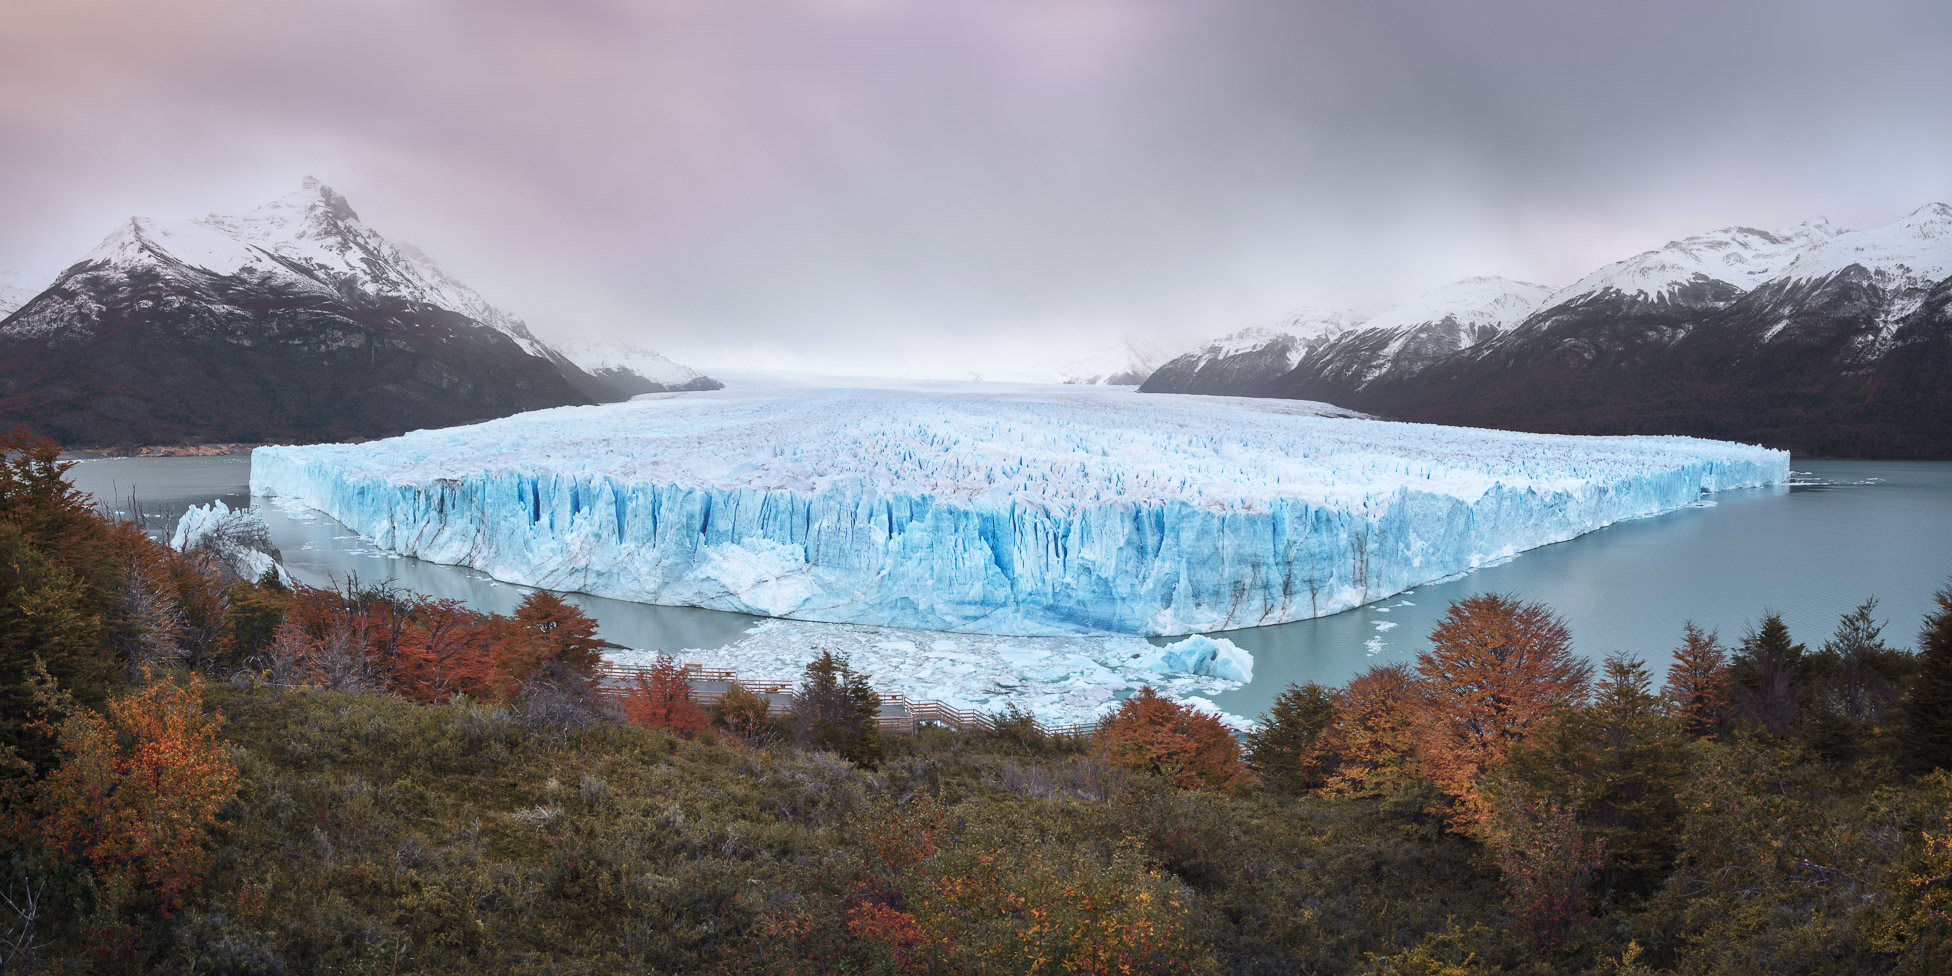 Panorama of Perito Moreno Glacier in the Evening, Santa Cruz Province, Argentina